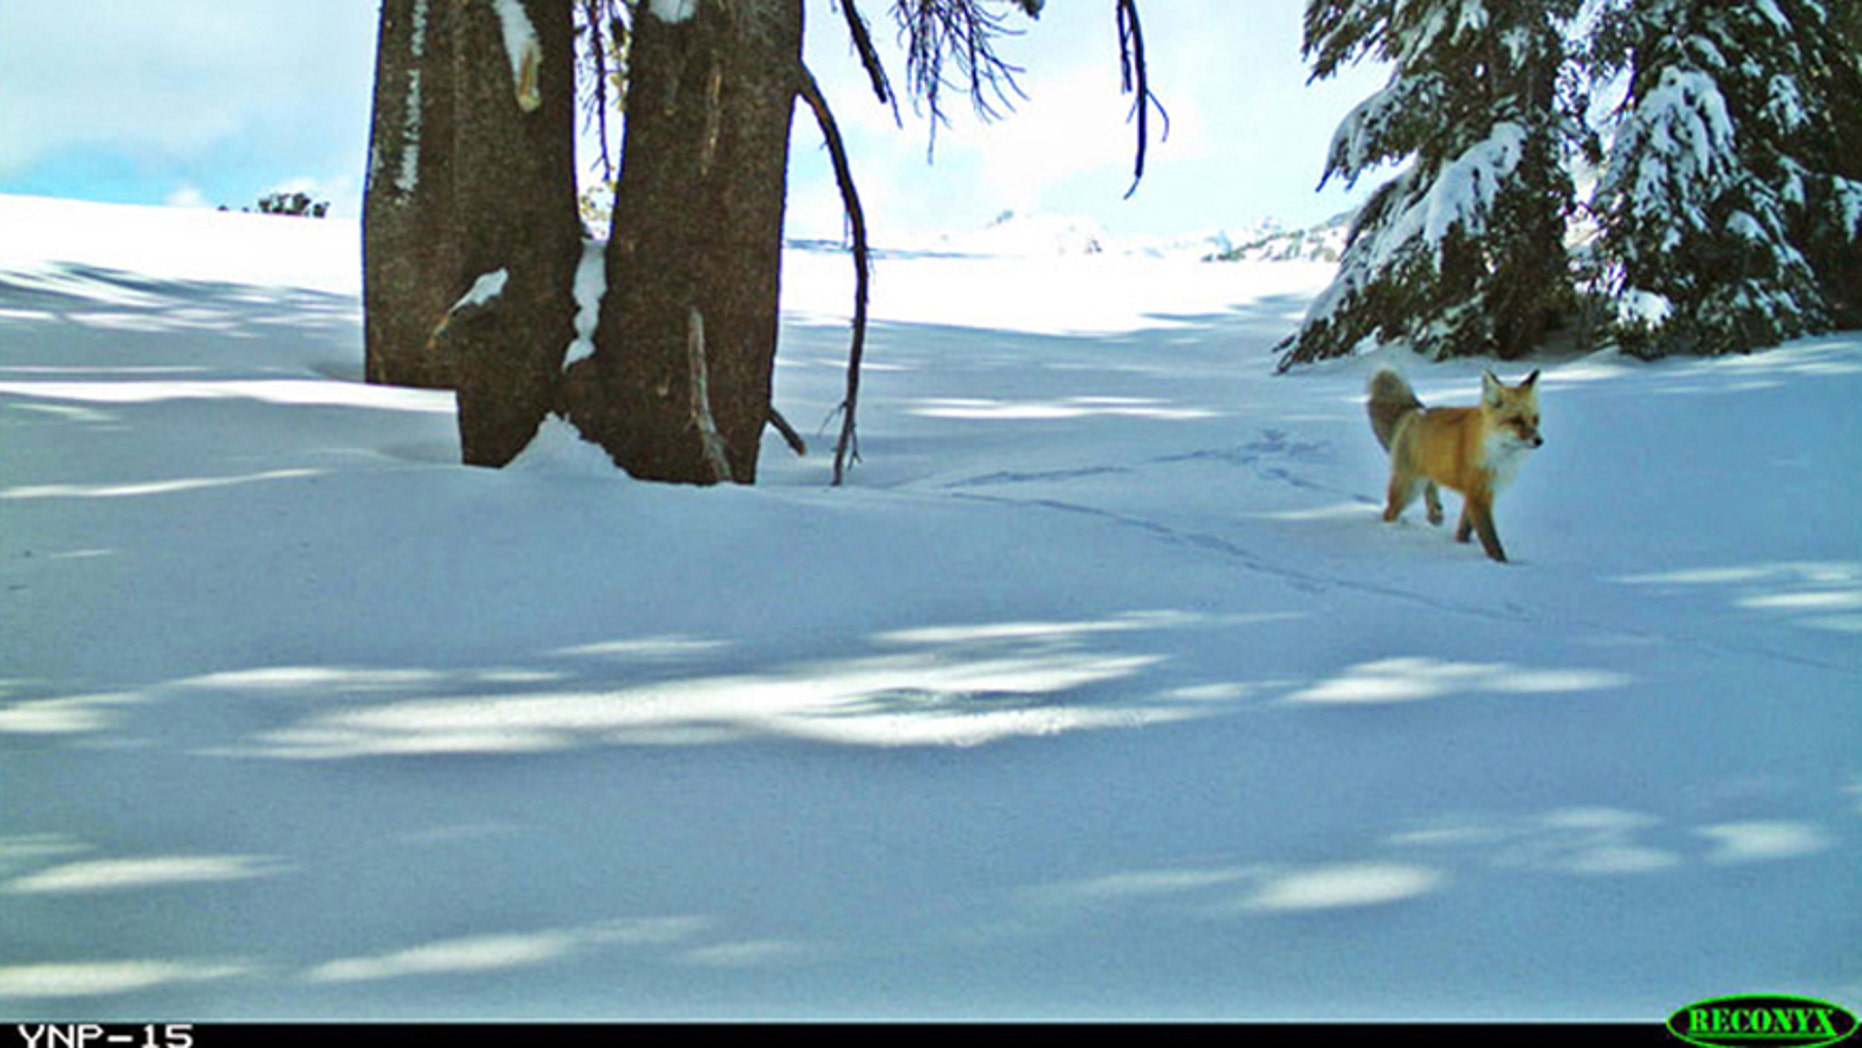 A Sierra Nevada red fox is shown in this handout photo taken with remote motion-sensitive camera provided by the National Park Service at Yosemite National Park, California, and provided on Jan. 29, 2015.